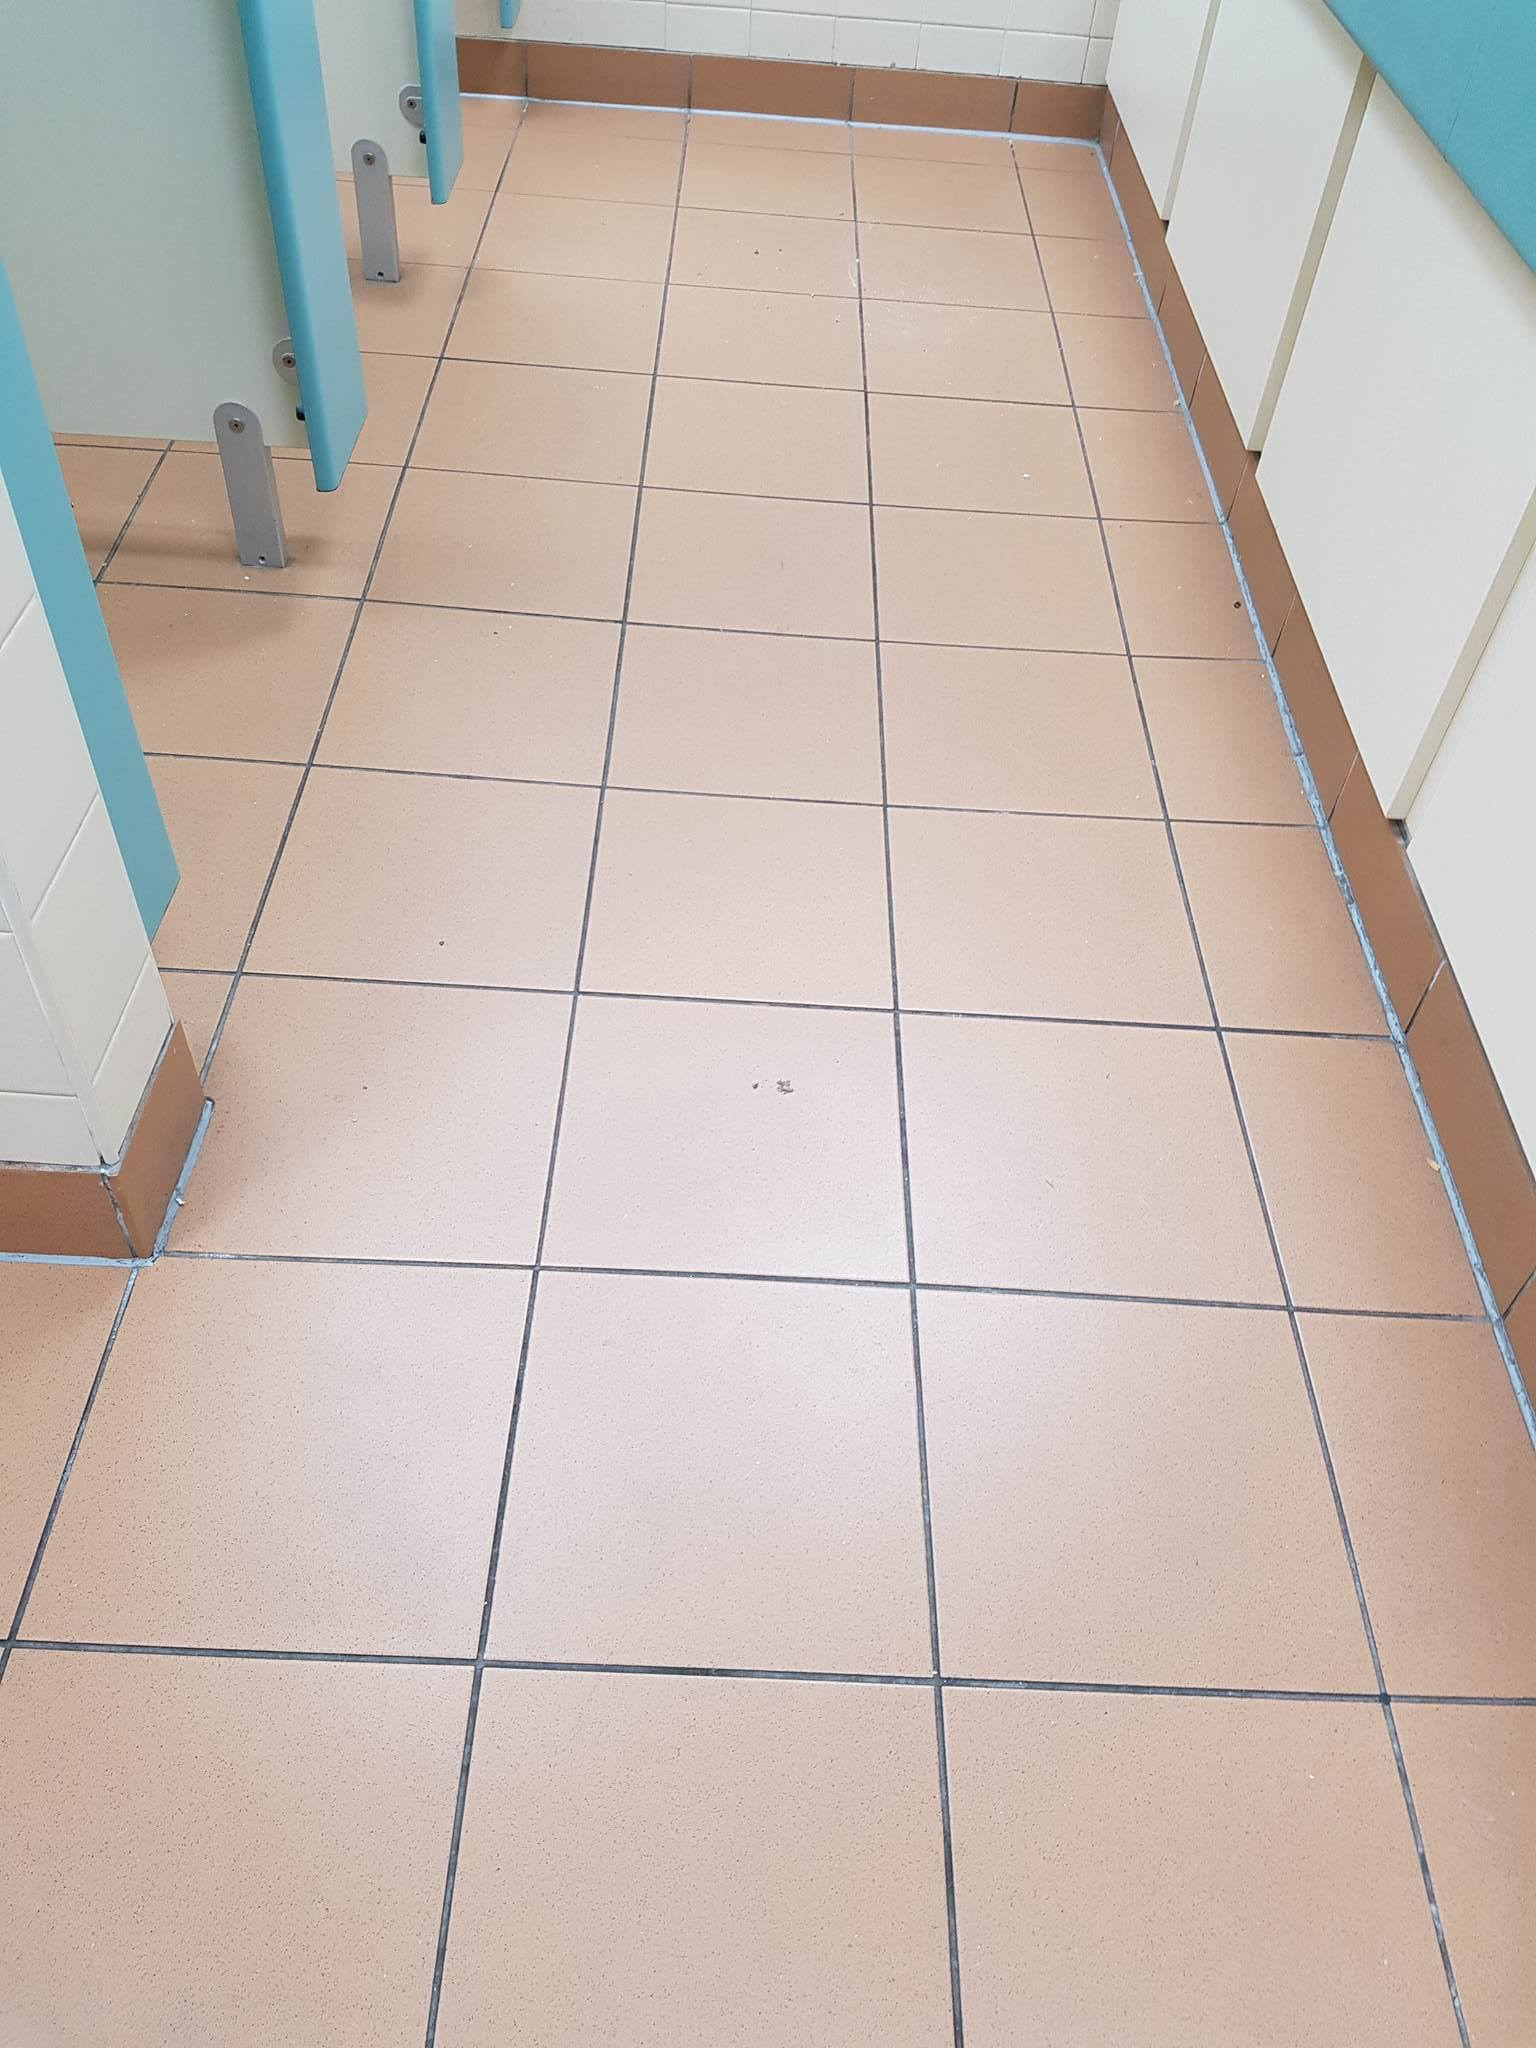 Toilet Floor at Corporate Offices Manchester Before Cleaning